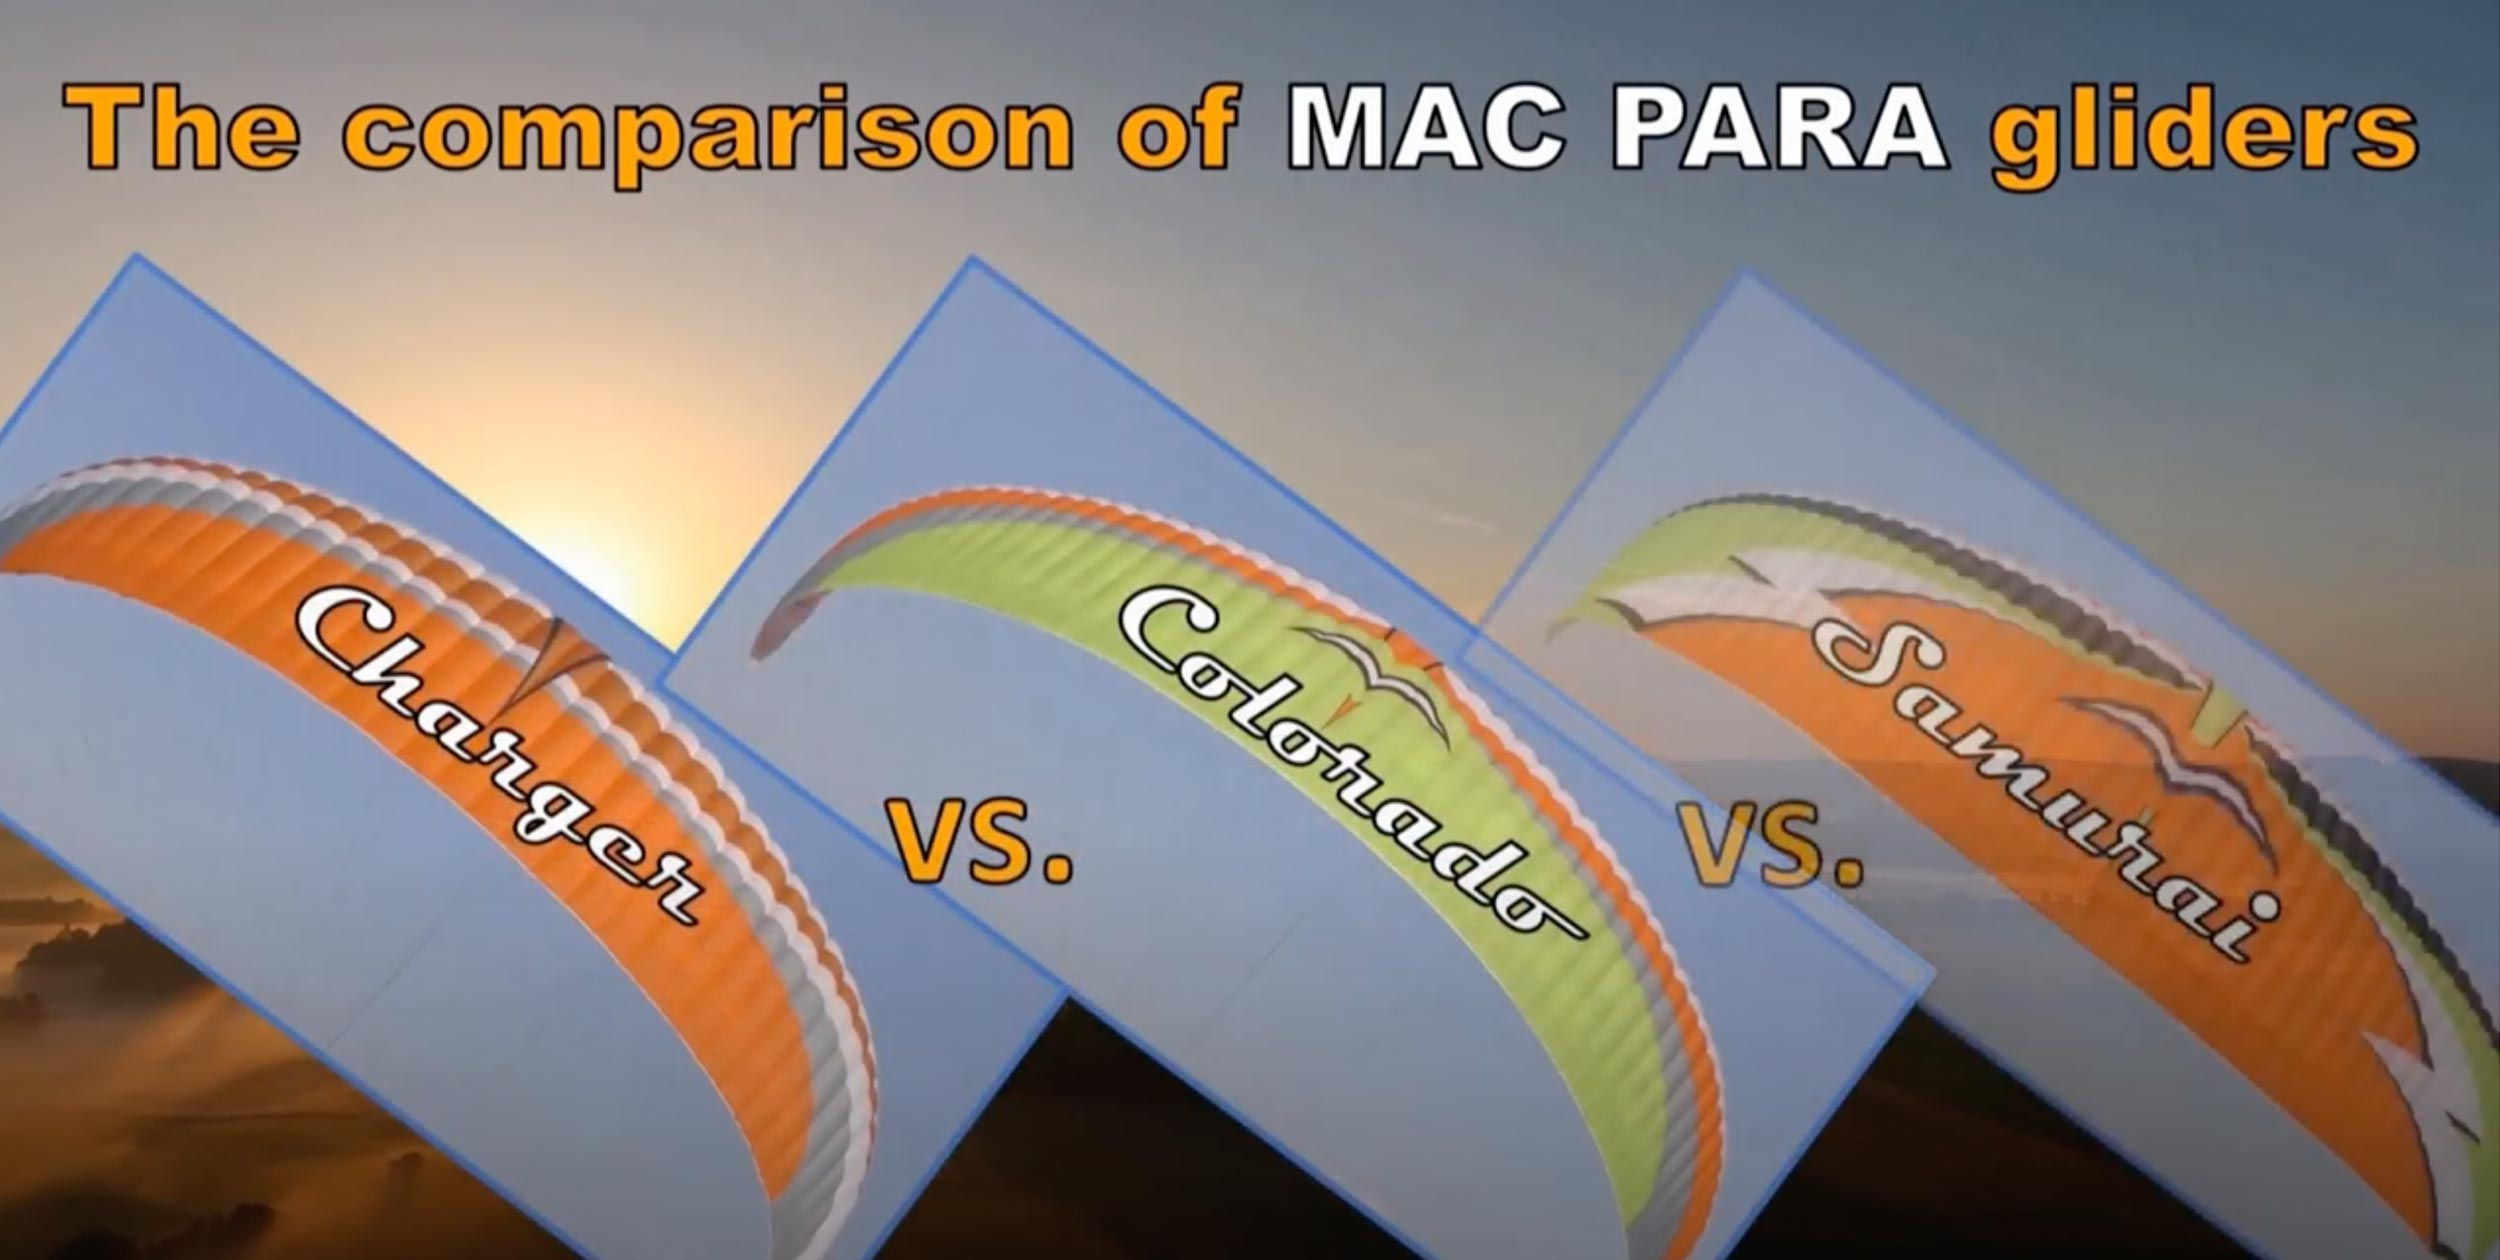 Mac Para PPG wings comparison video